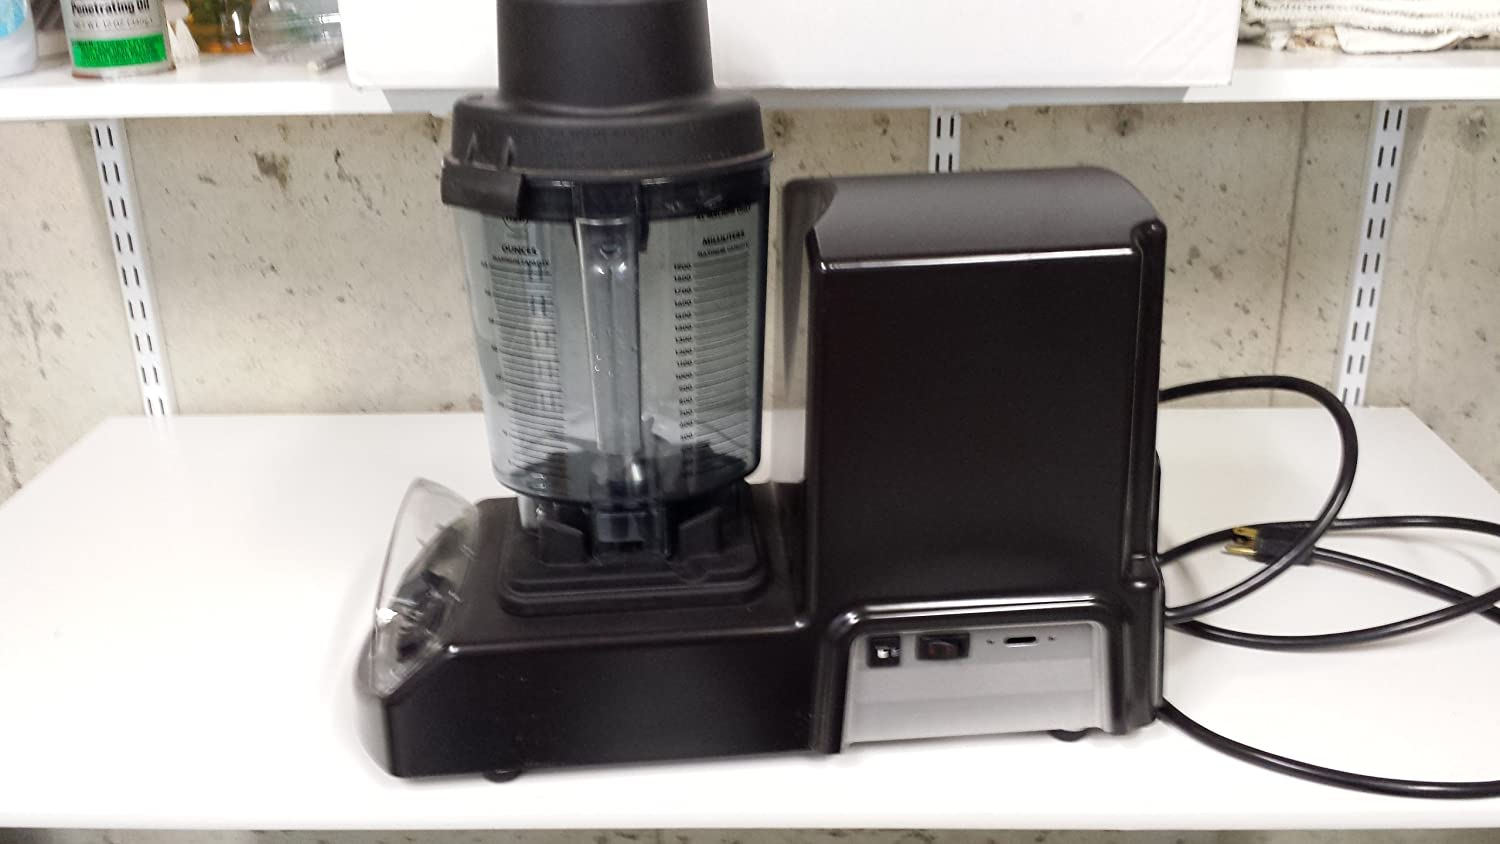 Vitamix Xl Commercial Blender with Two 64 Oz. Containers